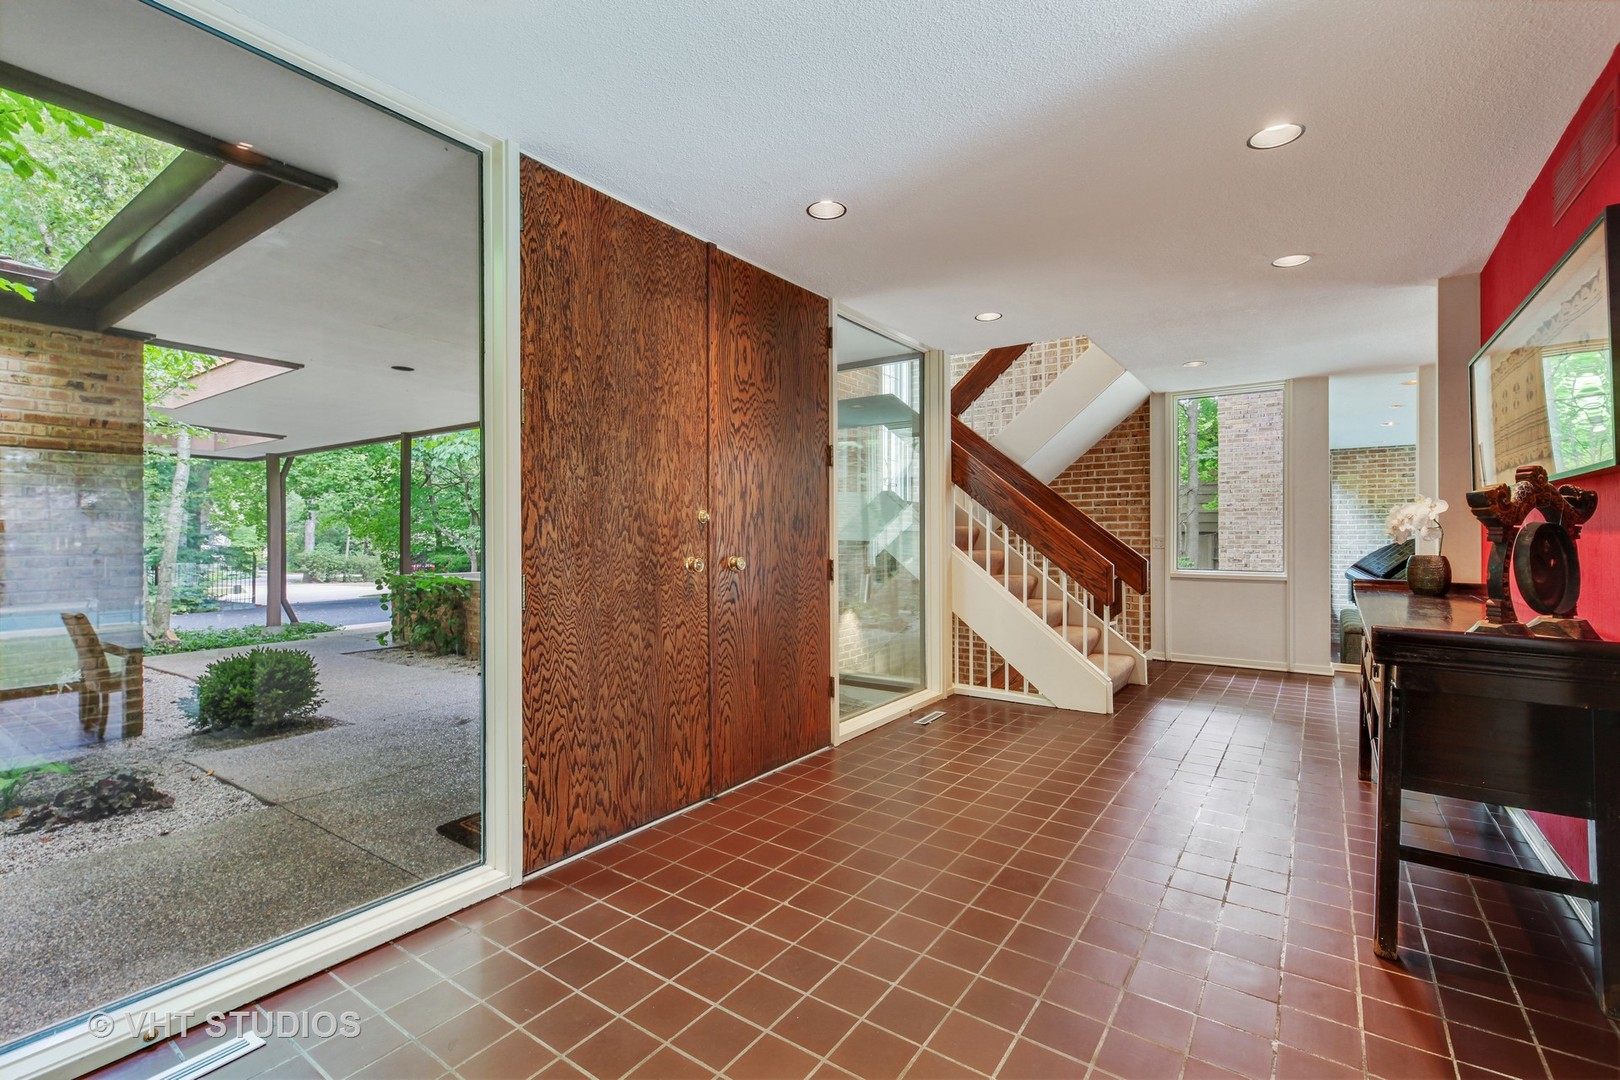 To schedule a private showing, contact Lou Zucaro at 312.907.4085 or send an email to lou@modernil.com